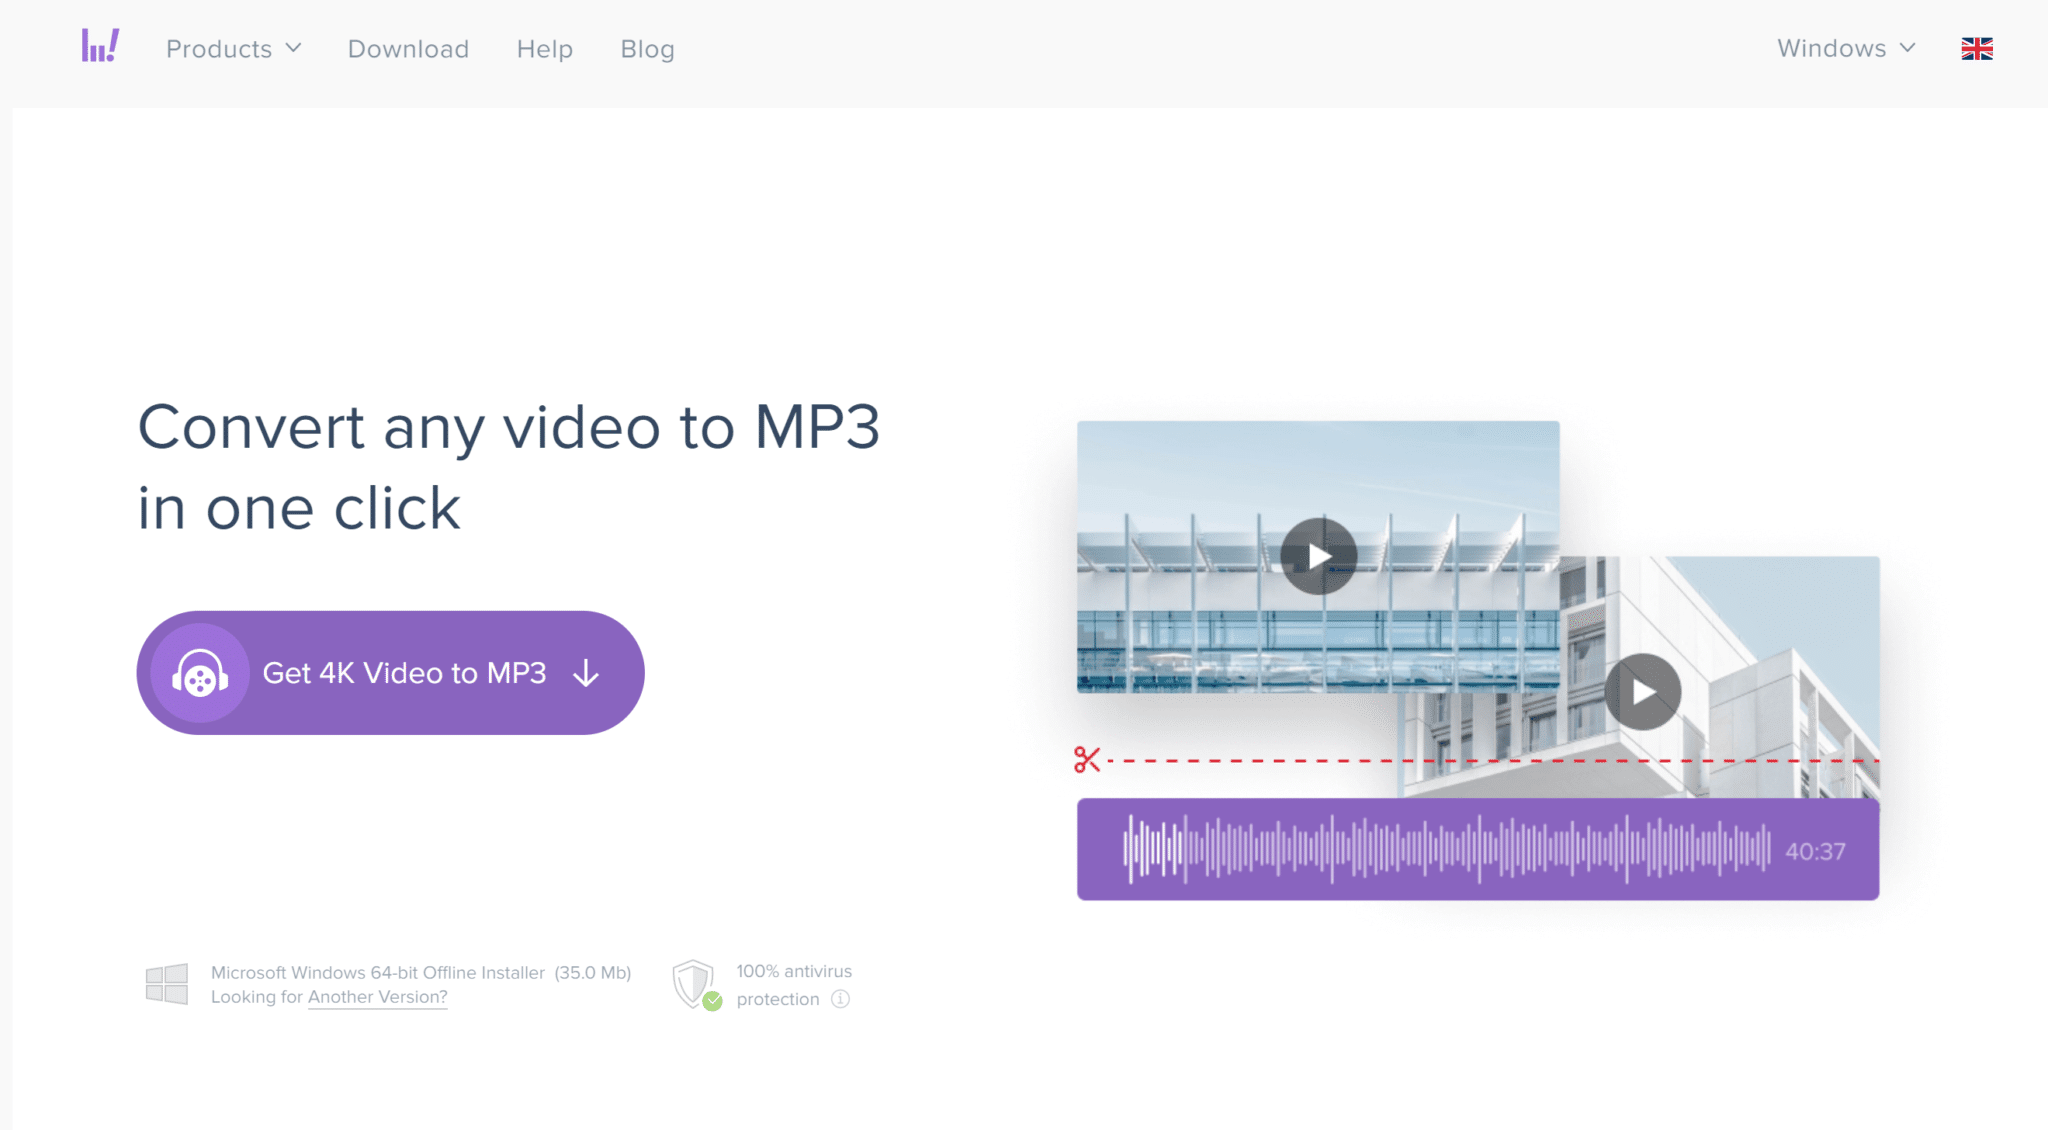 4K Video to MP3 Converter